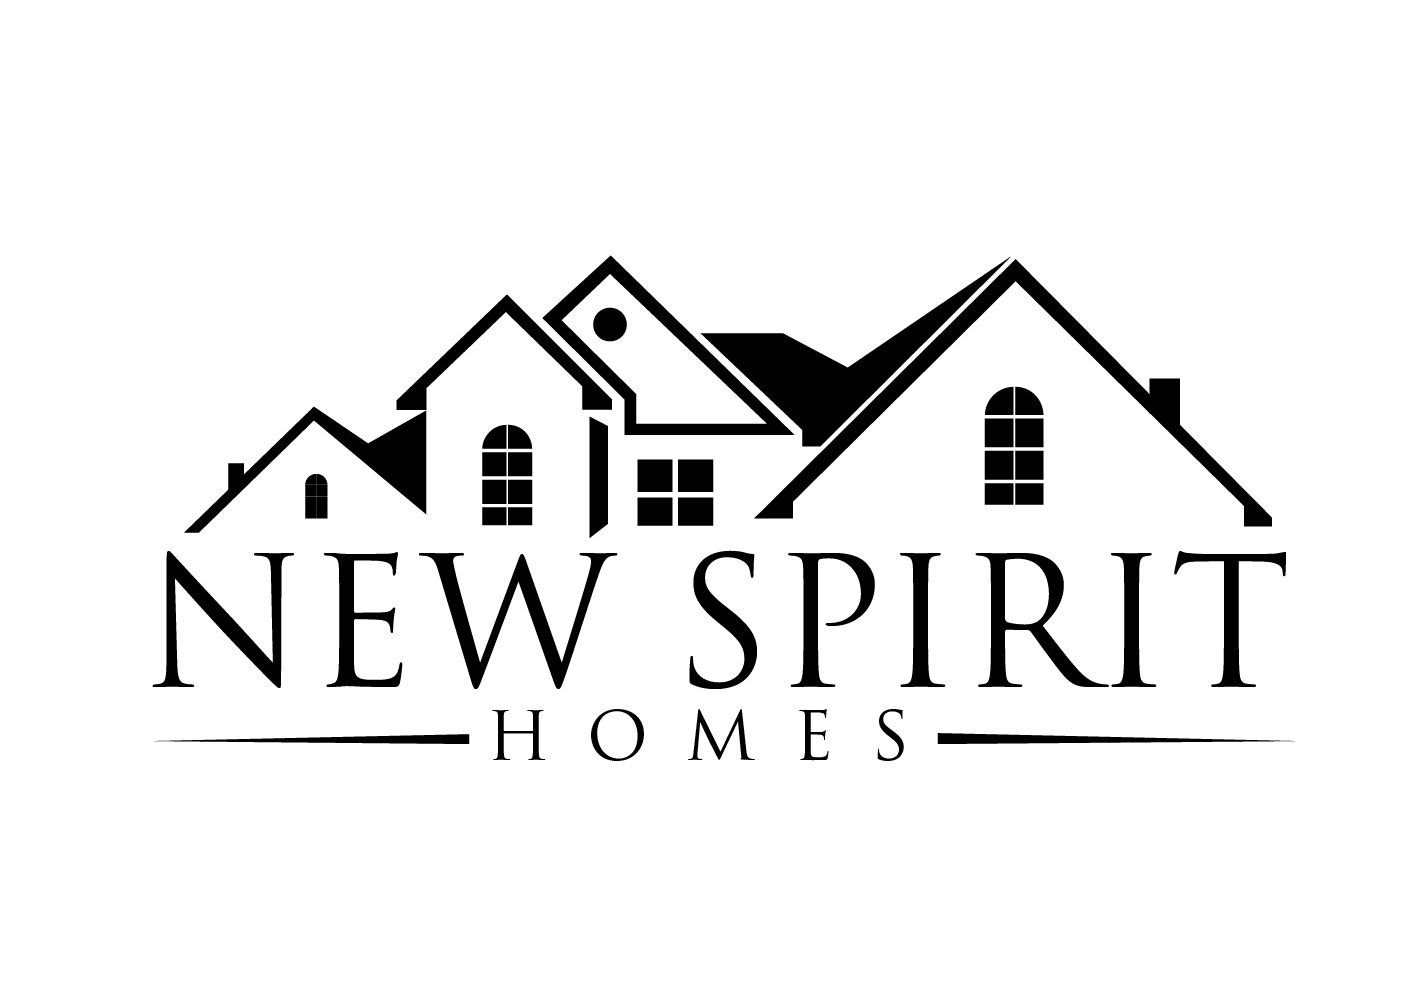 It Company Logo Design for New Spirit Homes by hih7 | Design #5654321